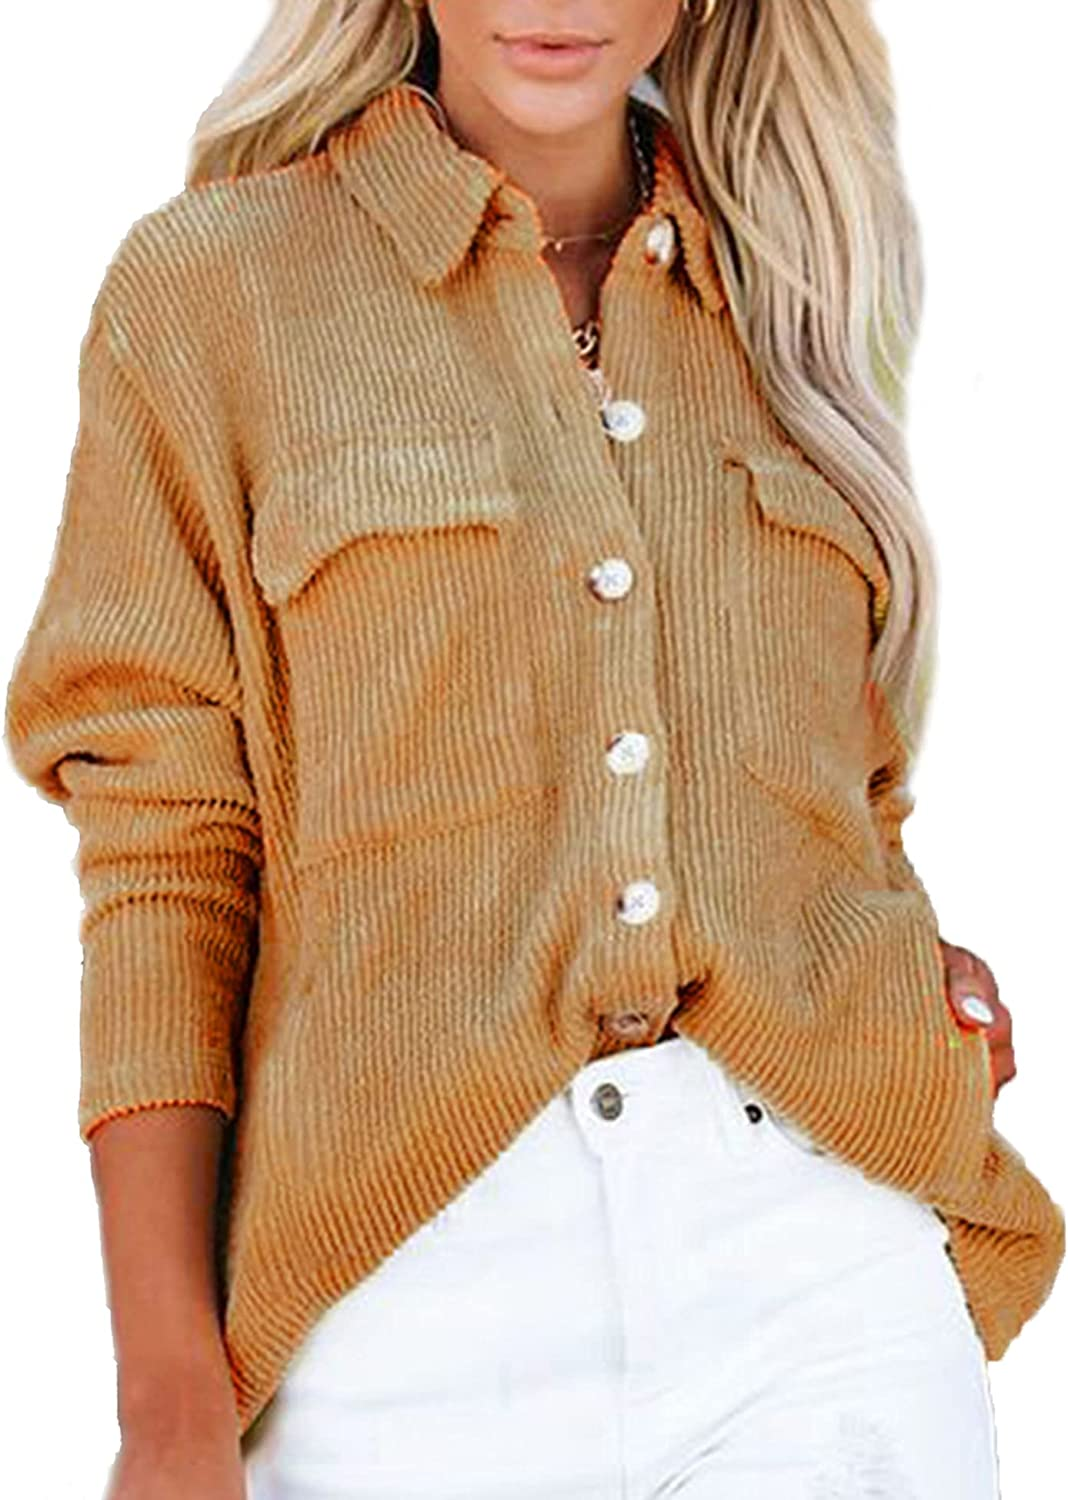 LYHNMW Womens Corduroy Shirts Collared Casual Long Sleeve Oversized Button Down Blouses Shacket Jackets Tops with Pockets